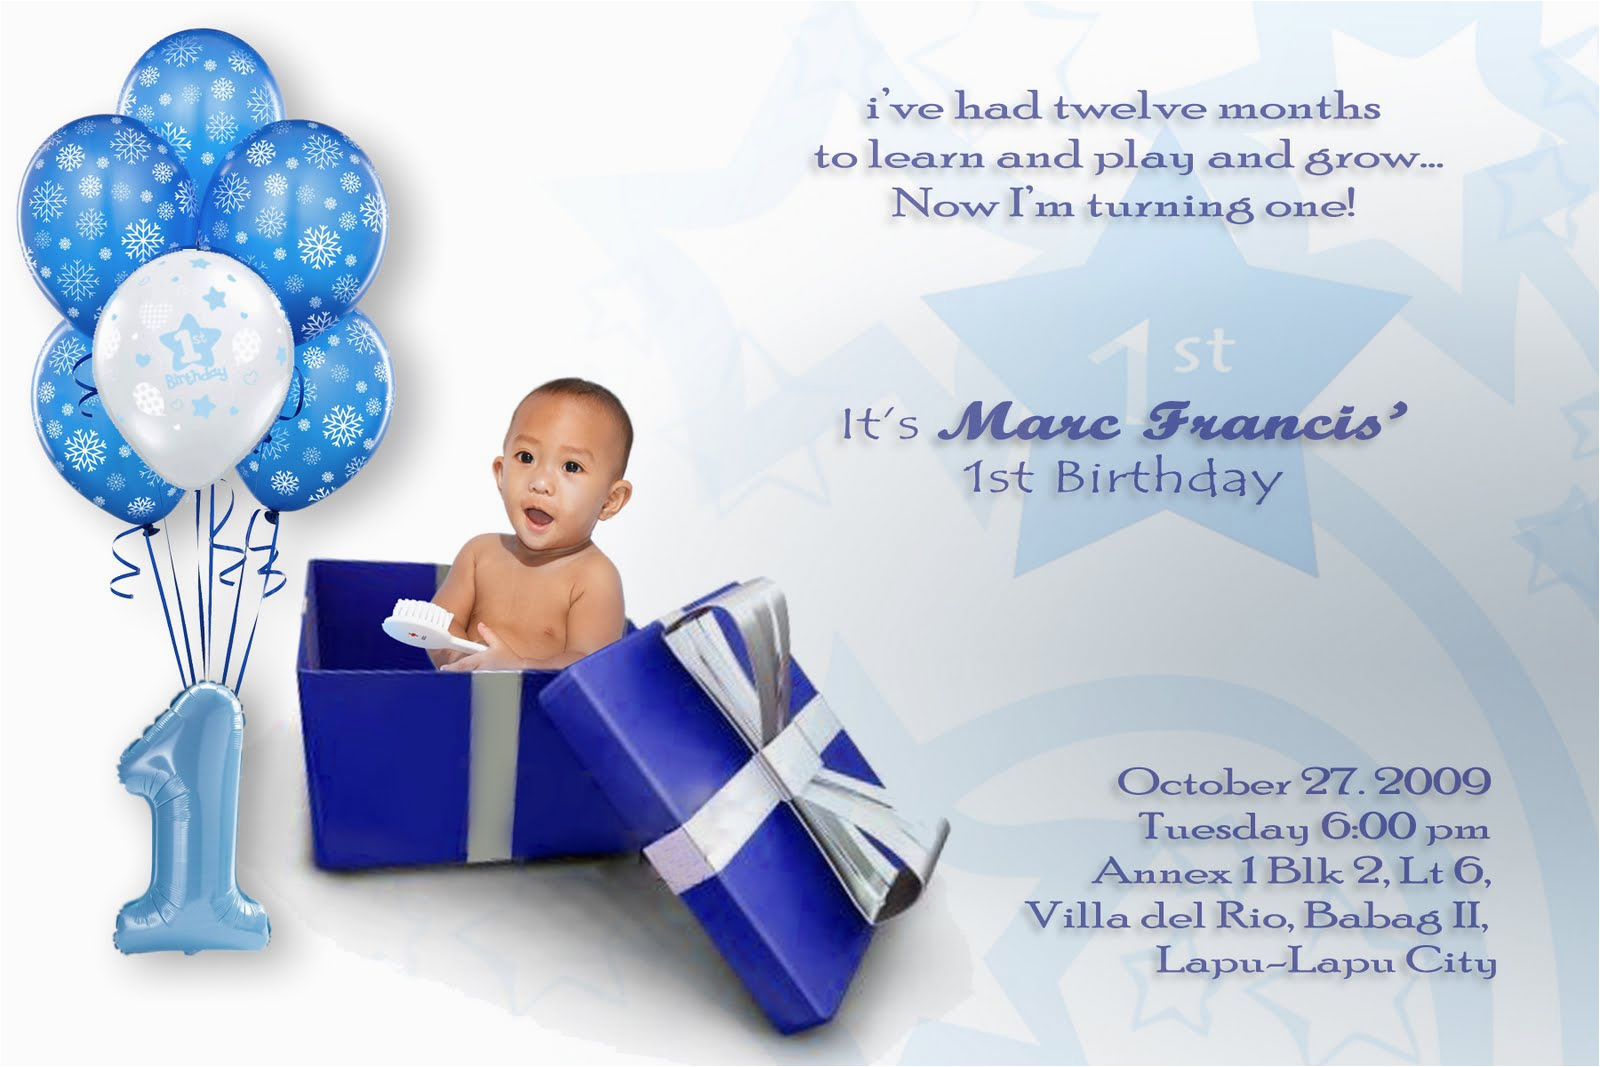 1st Birthday Invitation Card For Baby Boy Online First Invitations Free